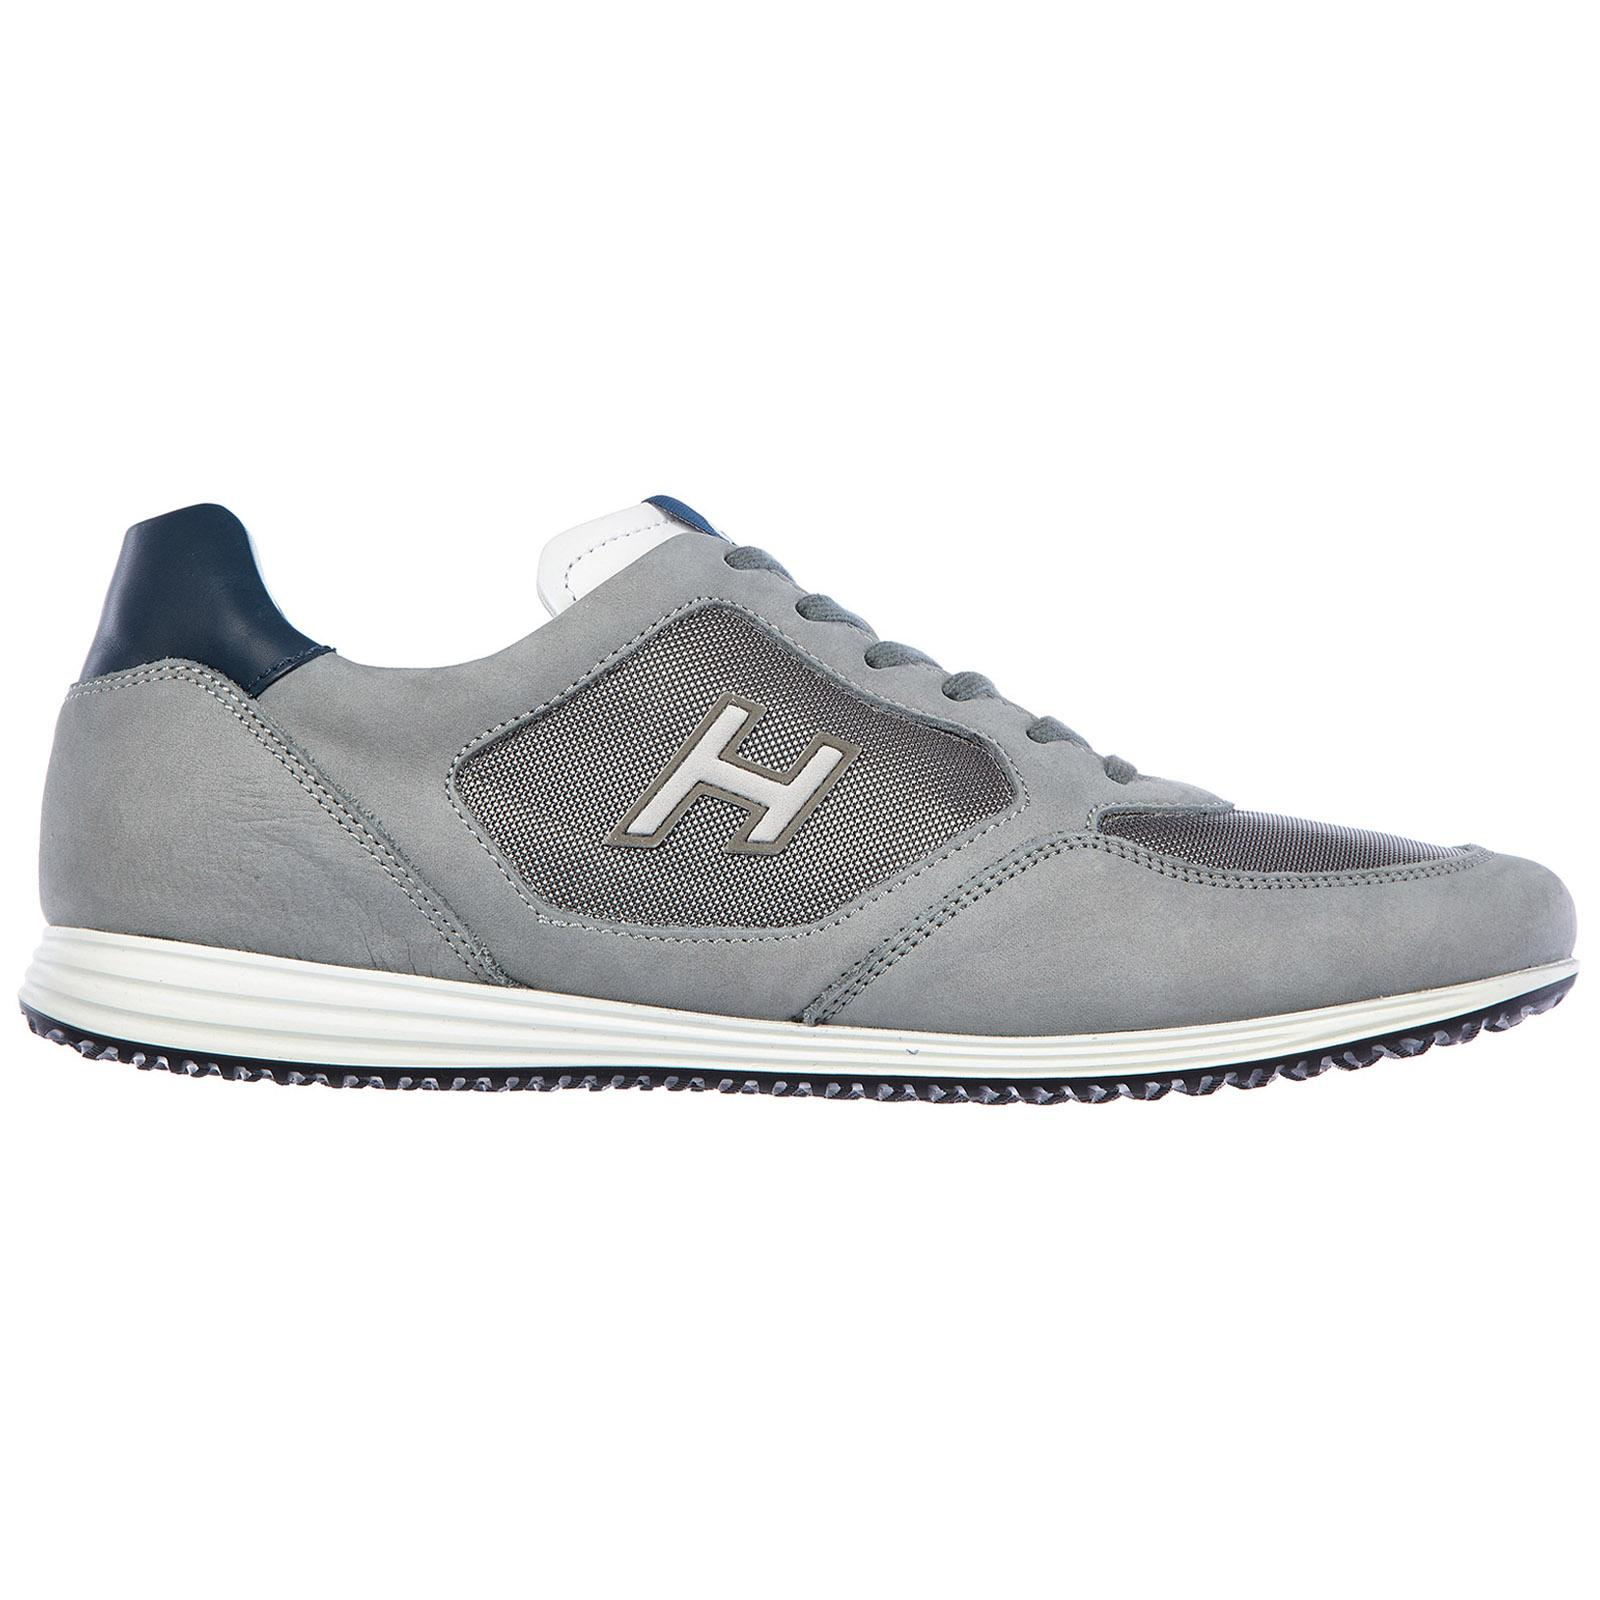 41e162885d9 Lyst - Hogan Shoes Leather Trainers Sneakers H205 Olympia in Gray ...